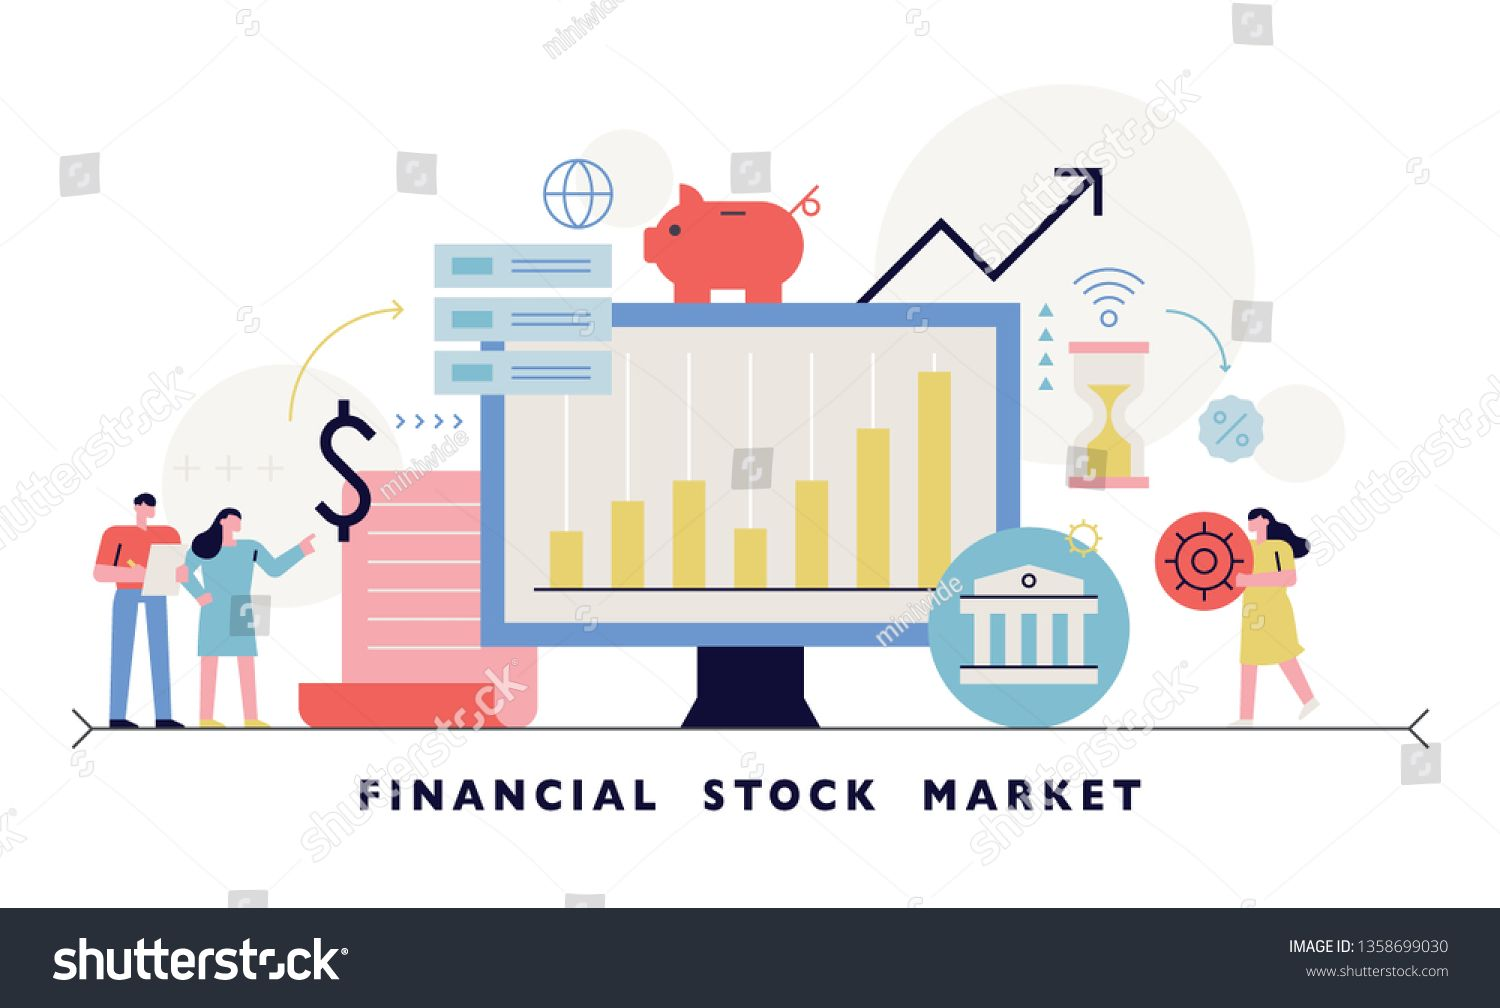 A Banner Layout Designed With A Financial Stock Market Icon Flat Design Style Minimal Vector Illustration Ad Affiliate In 2020 Layout Design Stock Market Banner